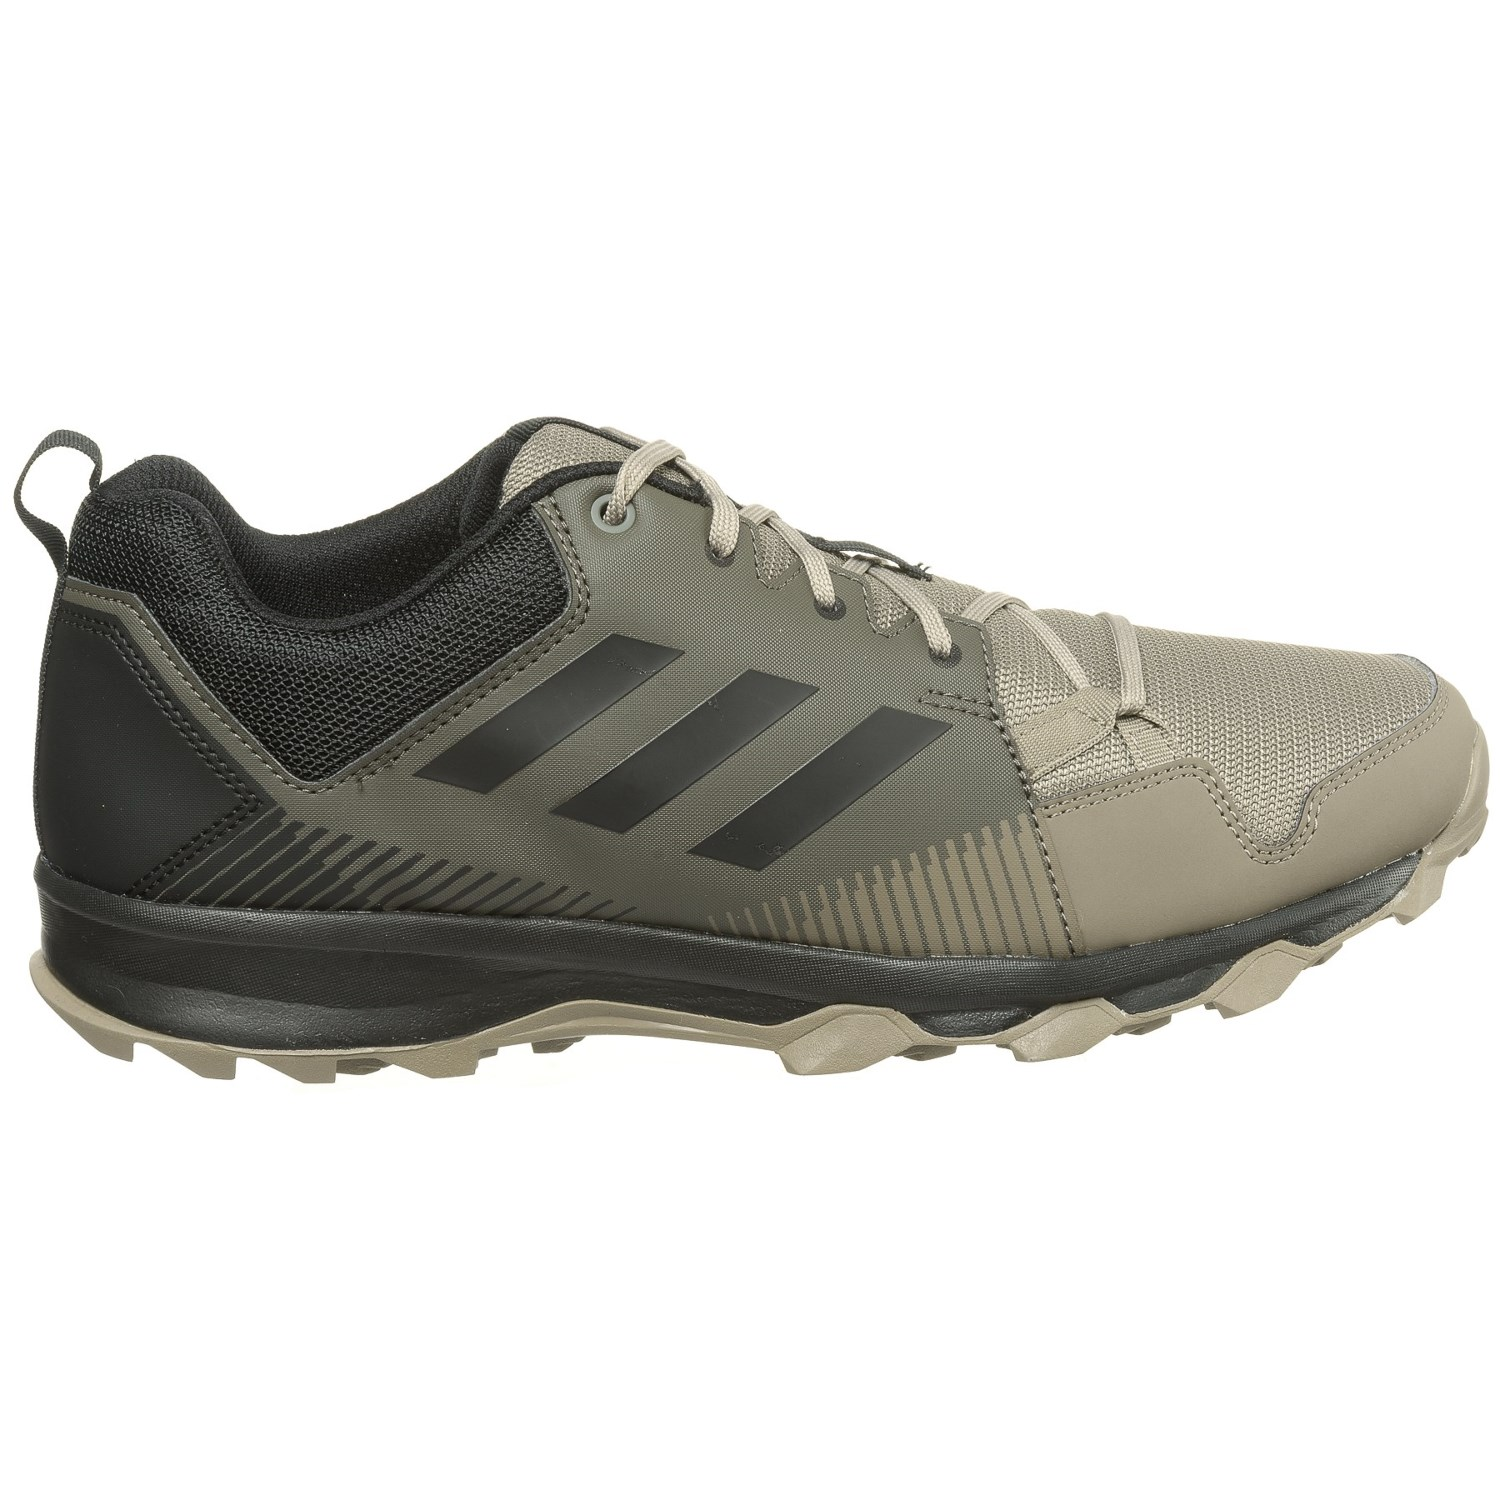 bcadd9774fa adidas Terrex Tracerocker Trail Running Shoes (For Men) - Save 37%